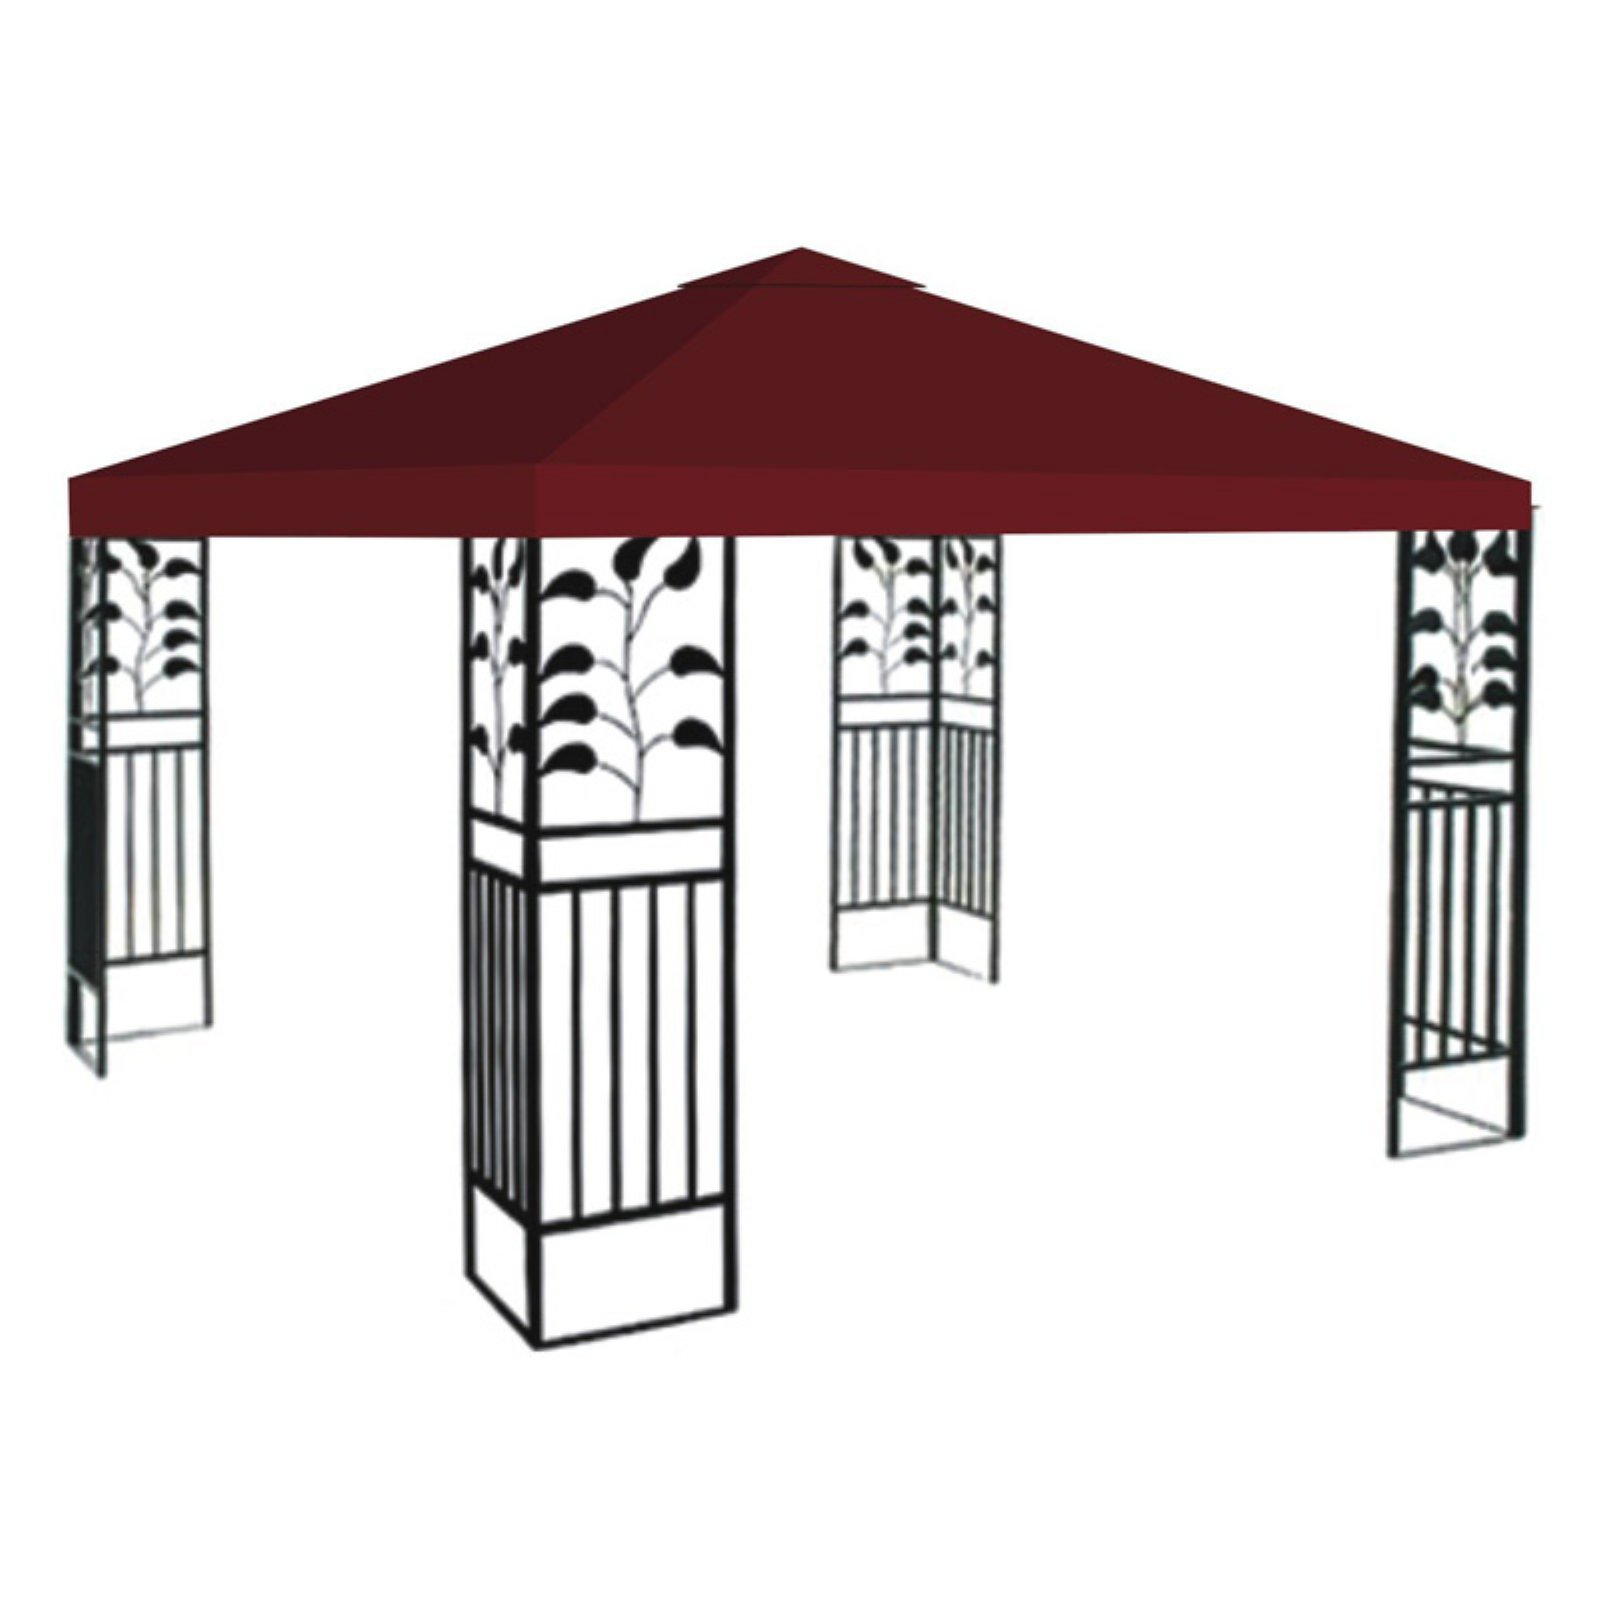 sc 1 st  Walmart.com & Sunrise 10 x 10 ft. Gazebo Replacement Canopy Cover - Walmart.com